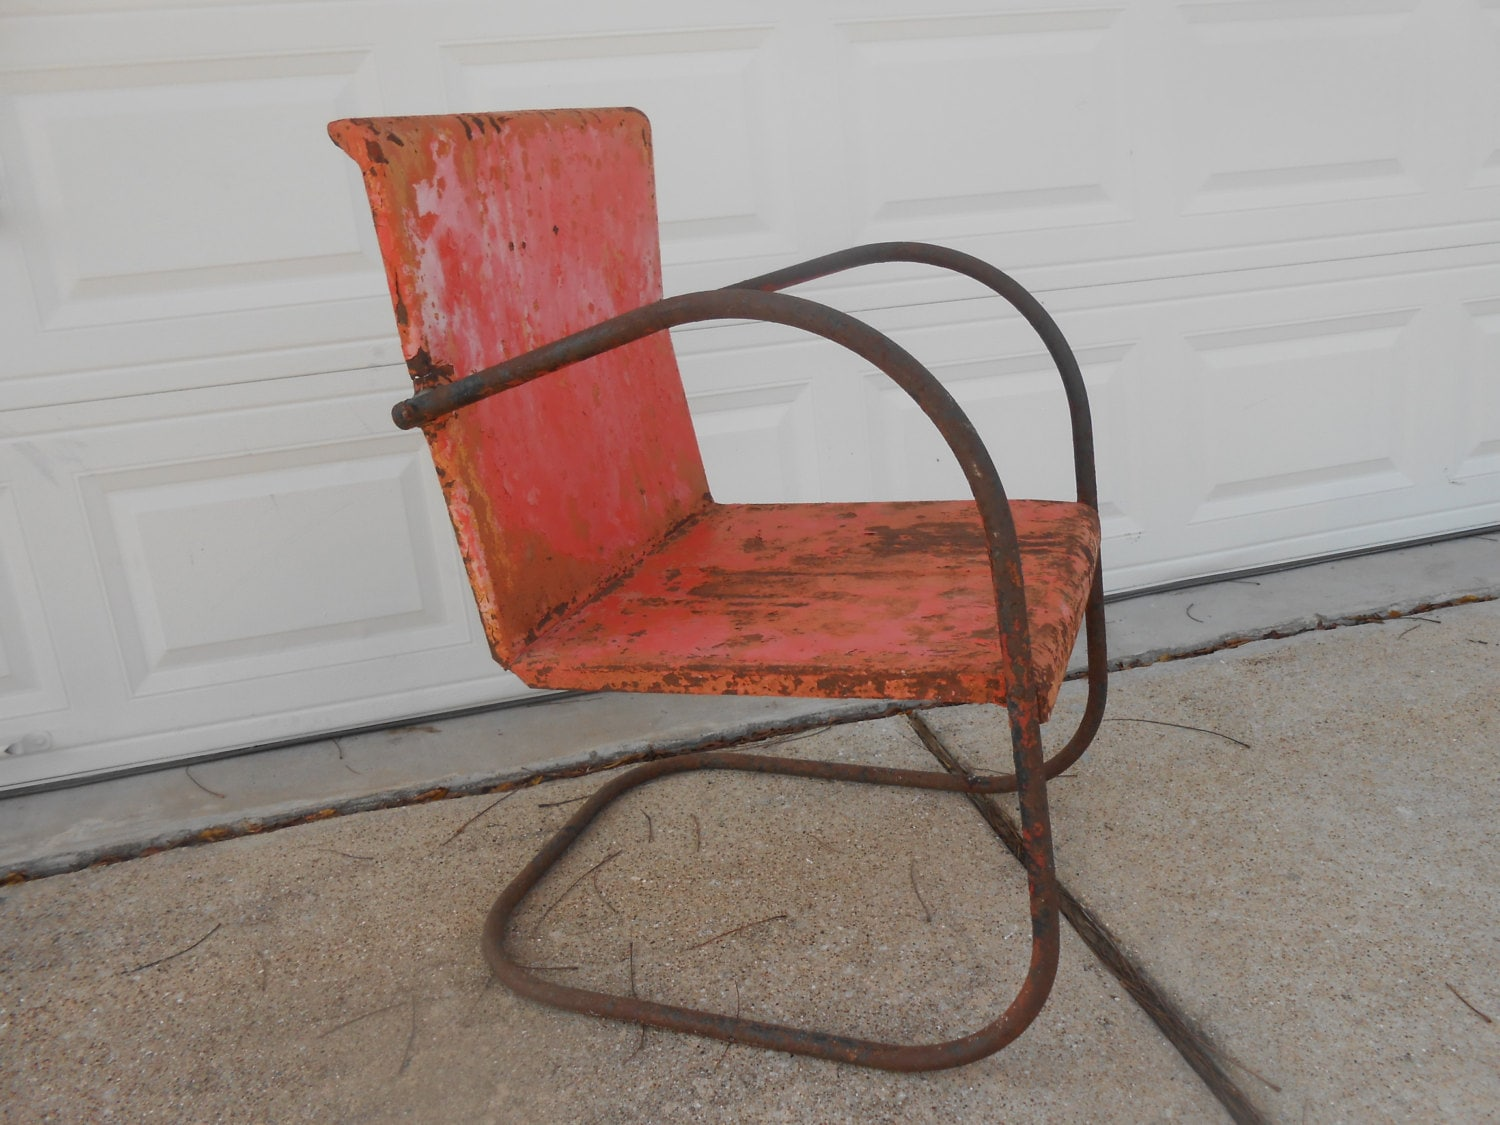 antique lawn chairs recaro computer chair metal rusty shabby chic cottage porch patio